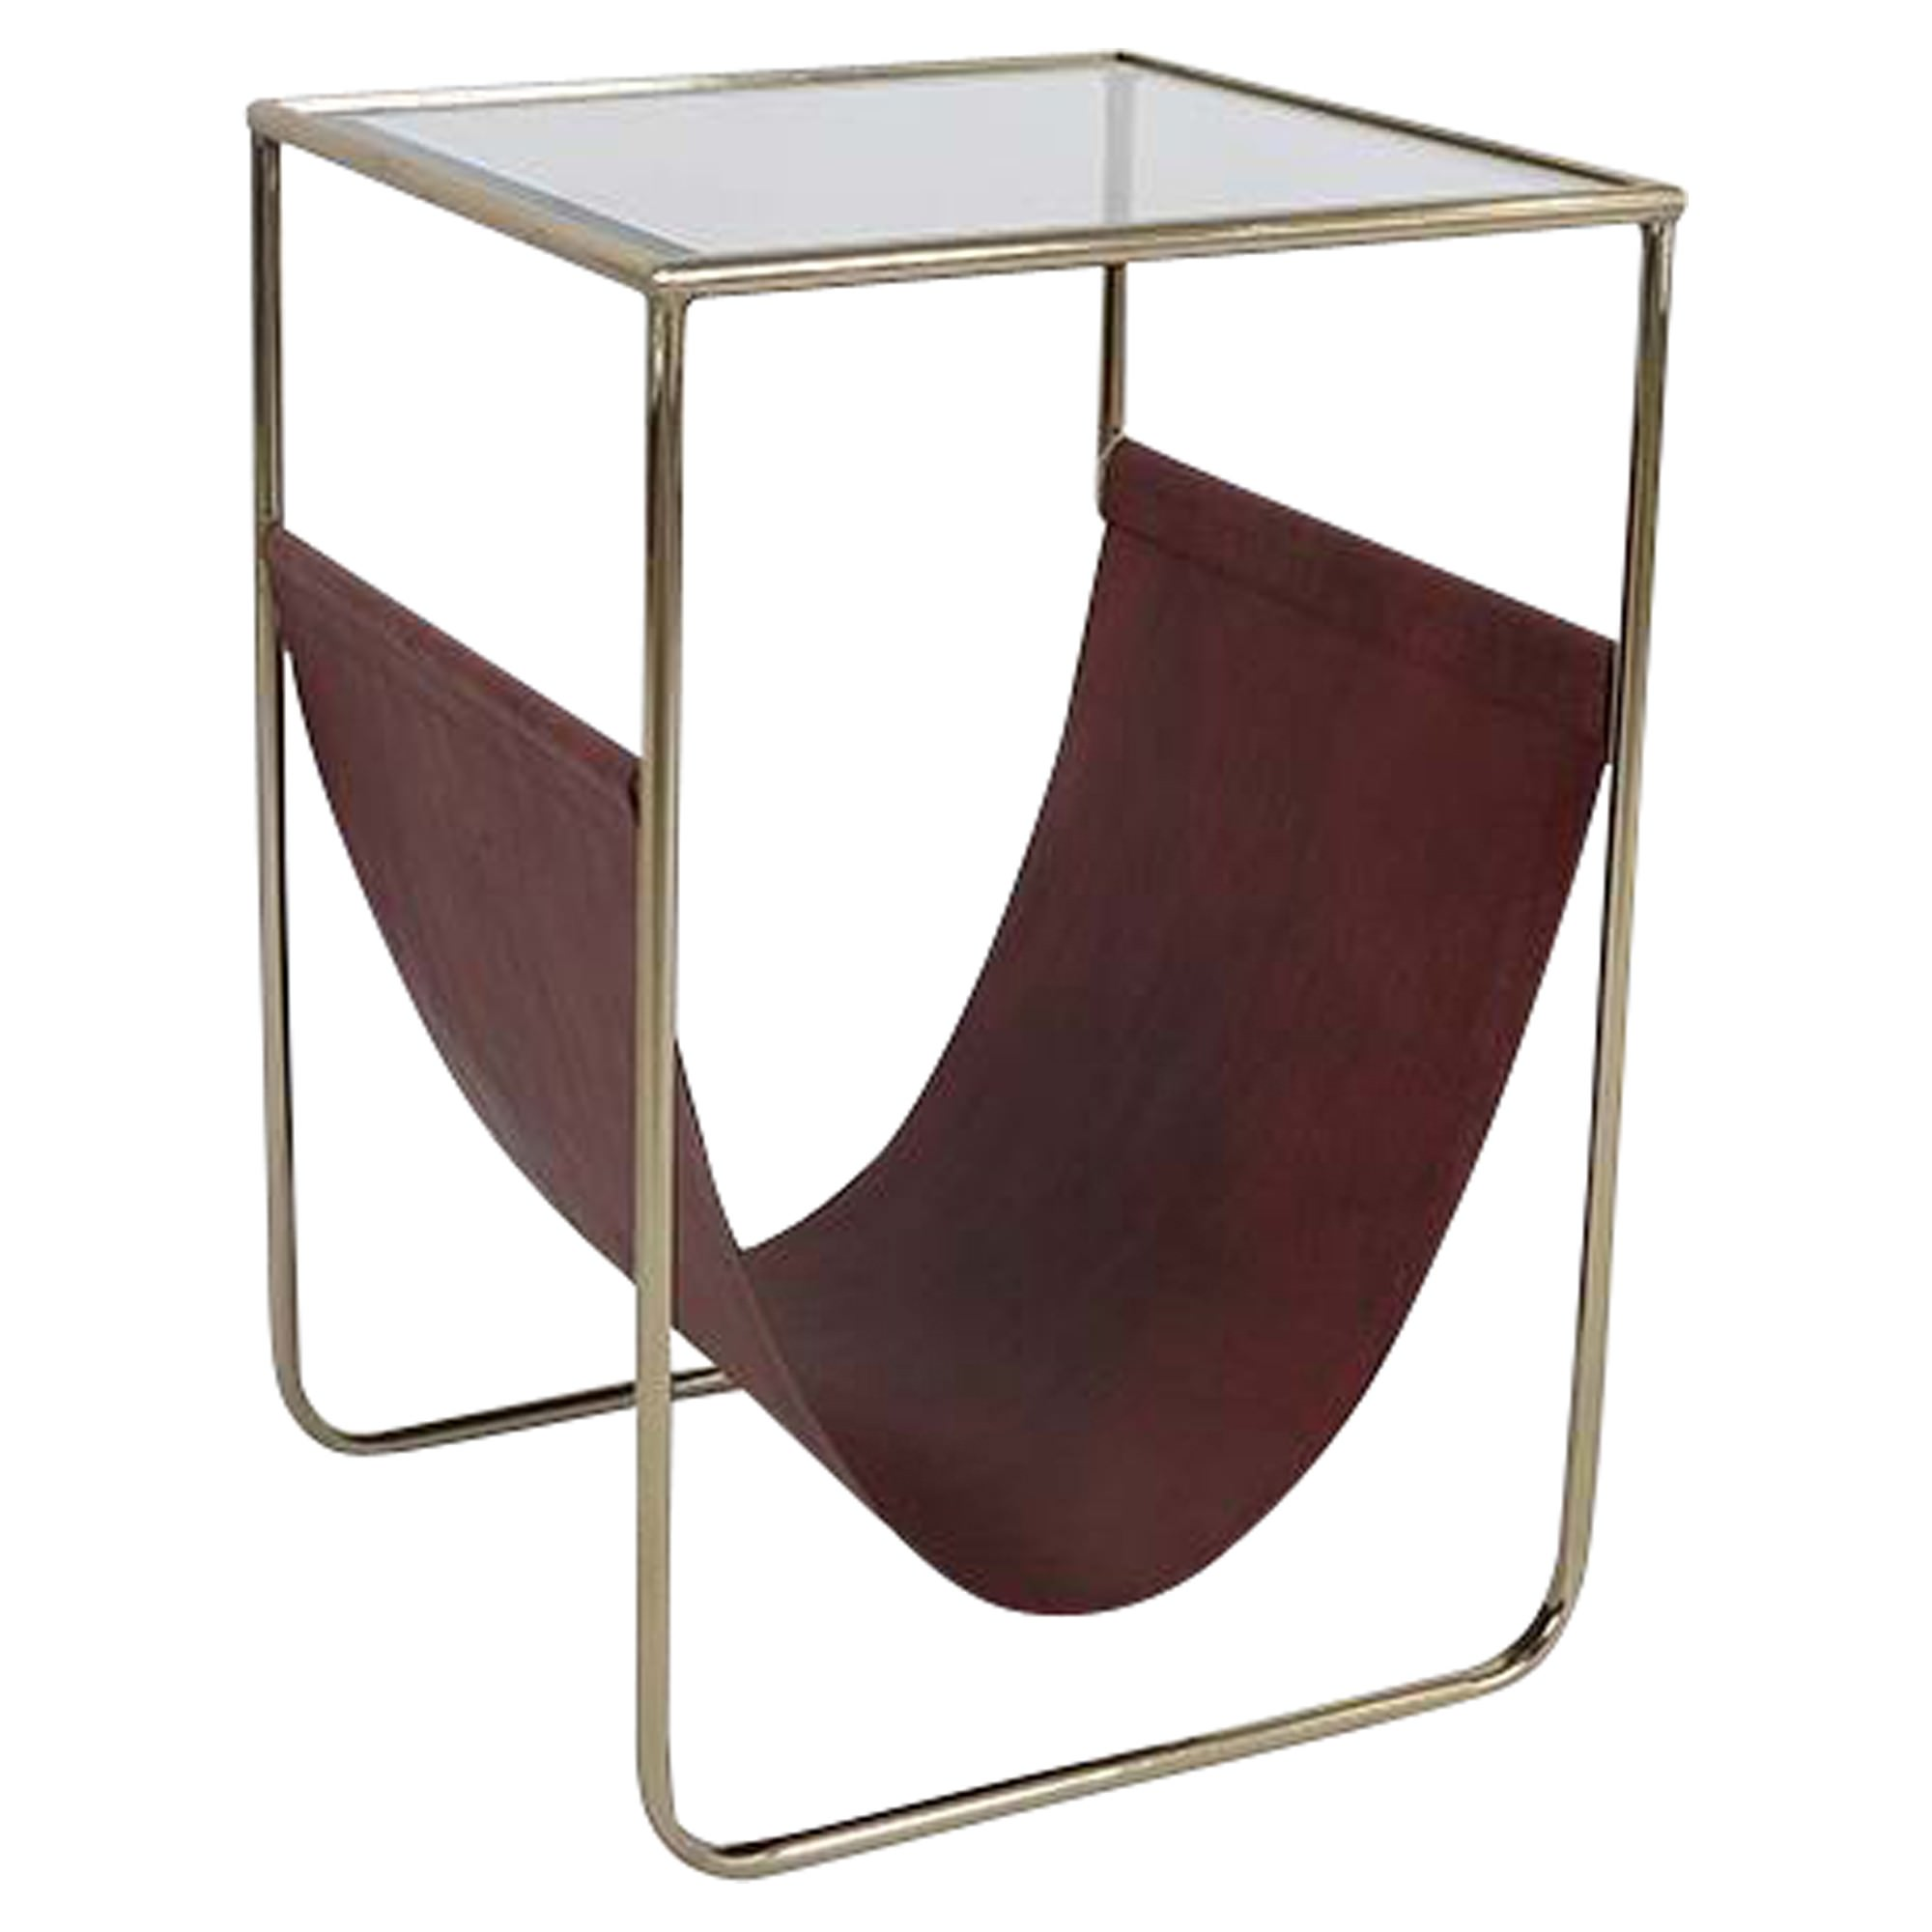 Milnor Glass Topped Metal Side Table with Magazine Holder